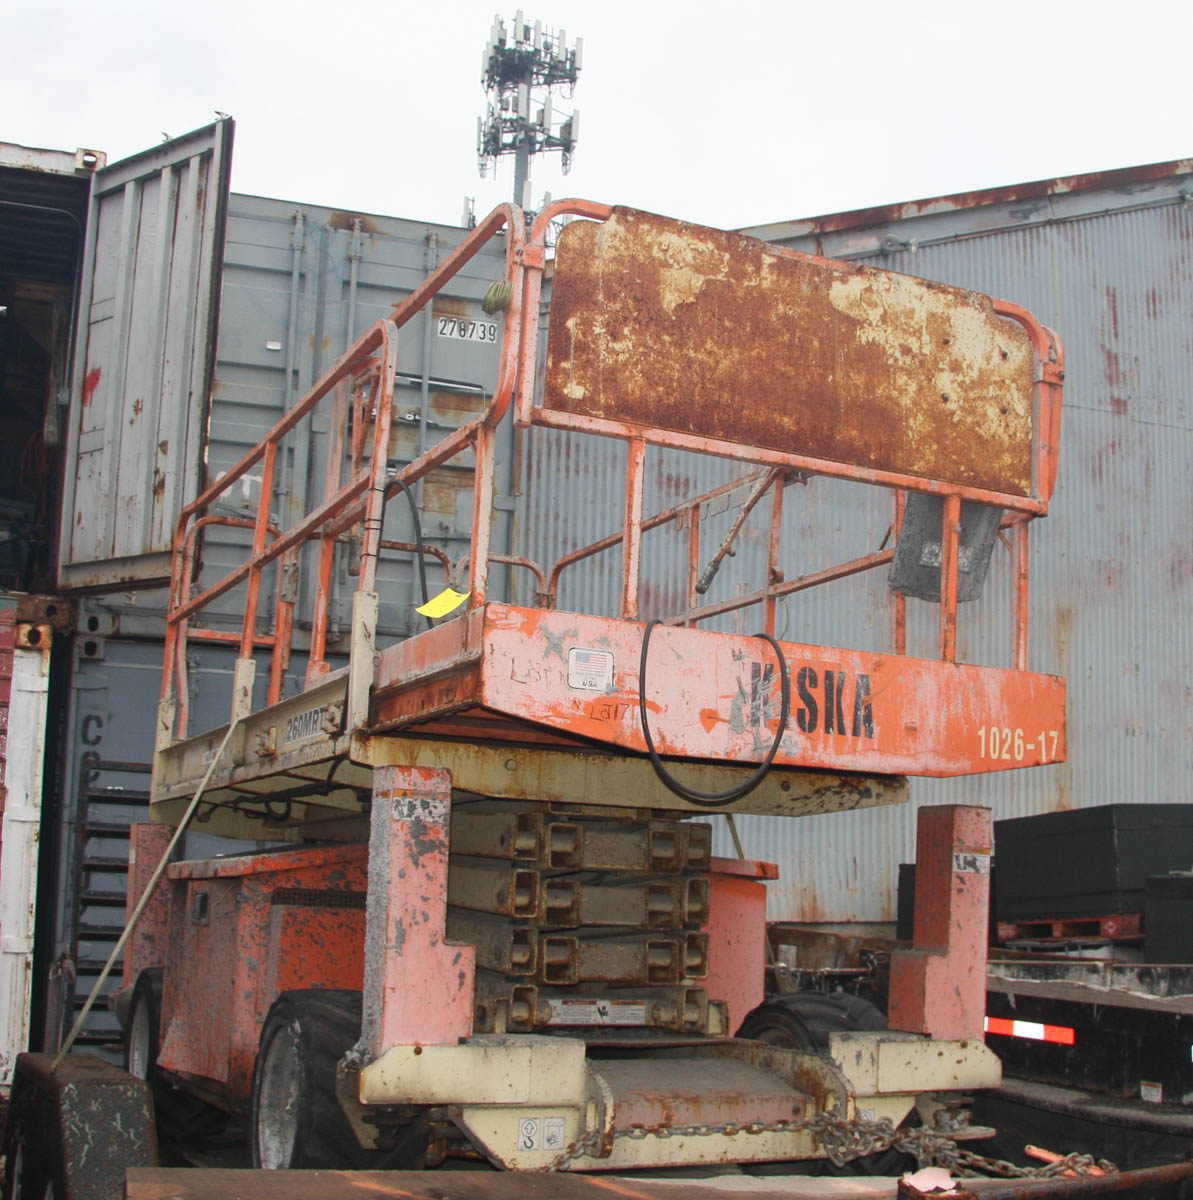 JLG 260MRT SCISSOR LIFT, 26' MAX PLATFORM HEIGHT, 1250# CAPACITY, APPROXIMATELY 2830 HOURS, S/N: N/A - Image 9 of 9